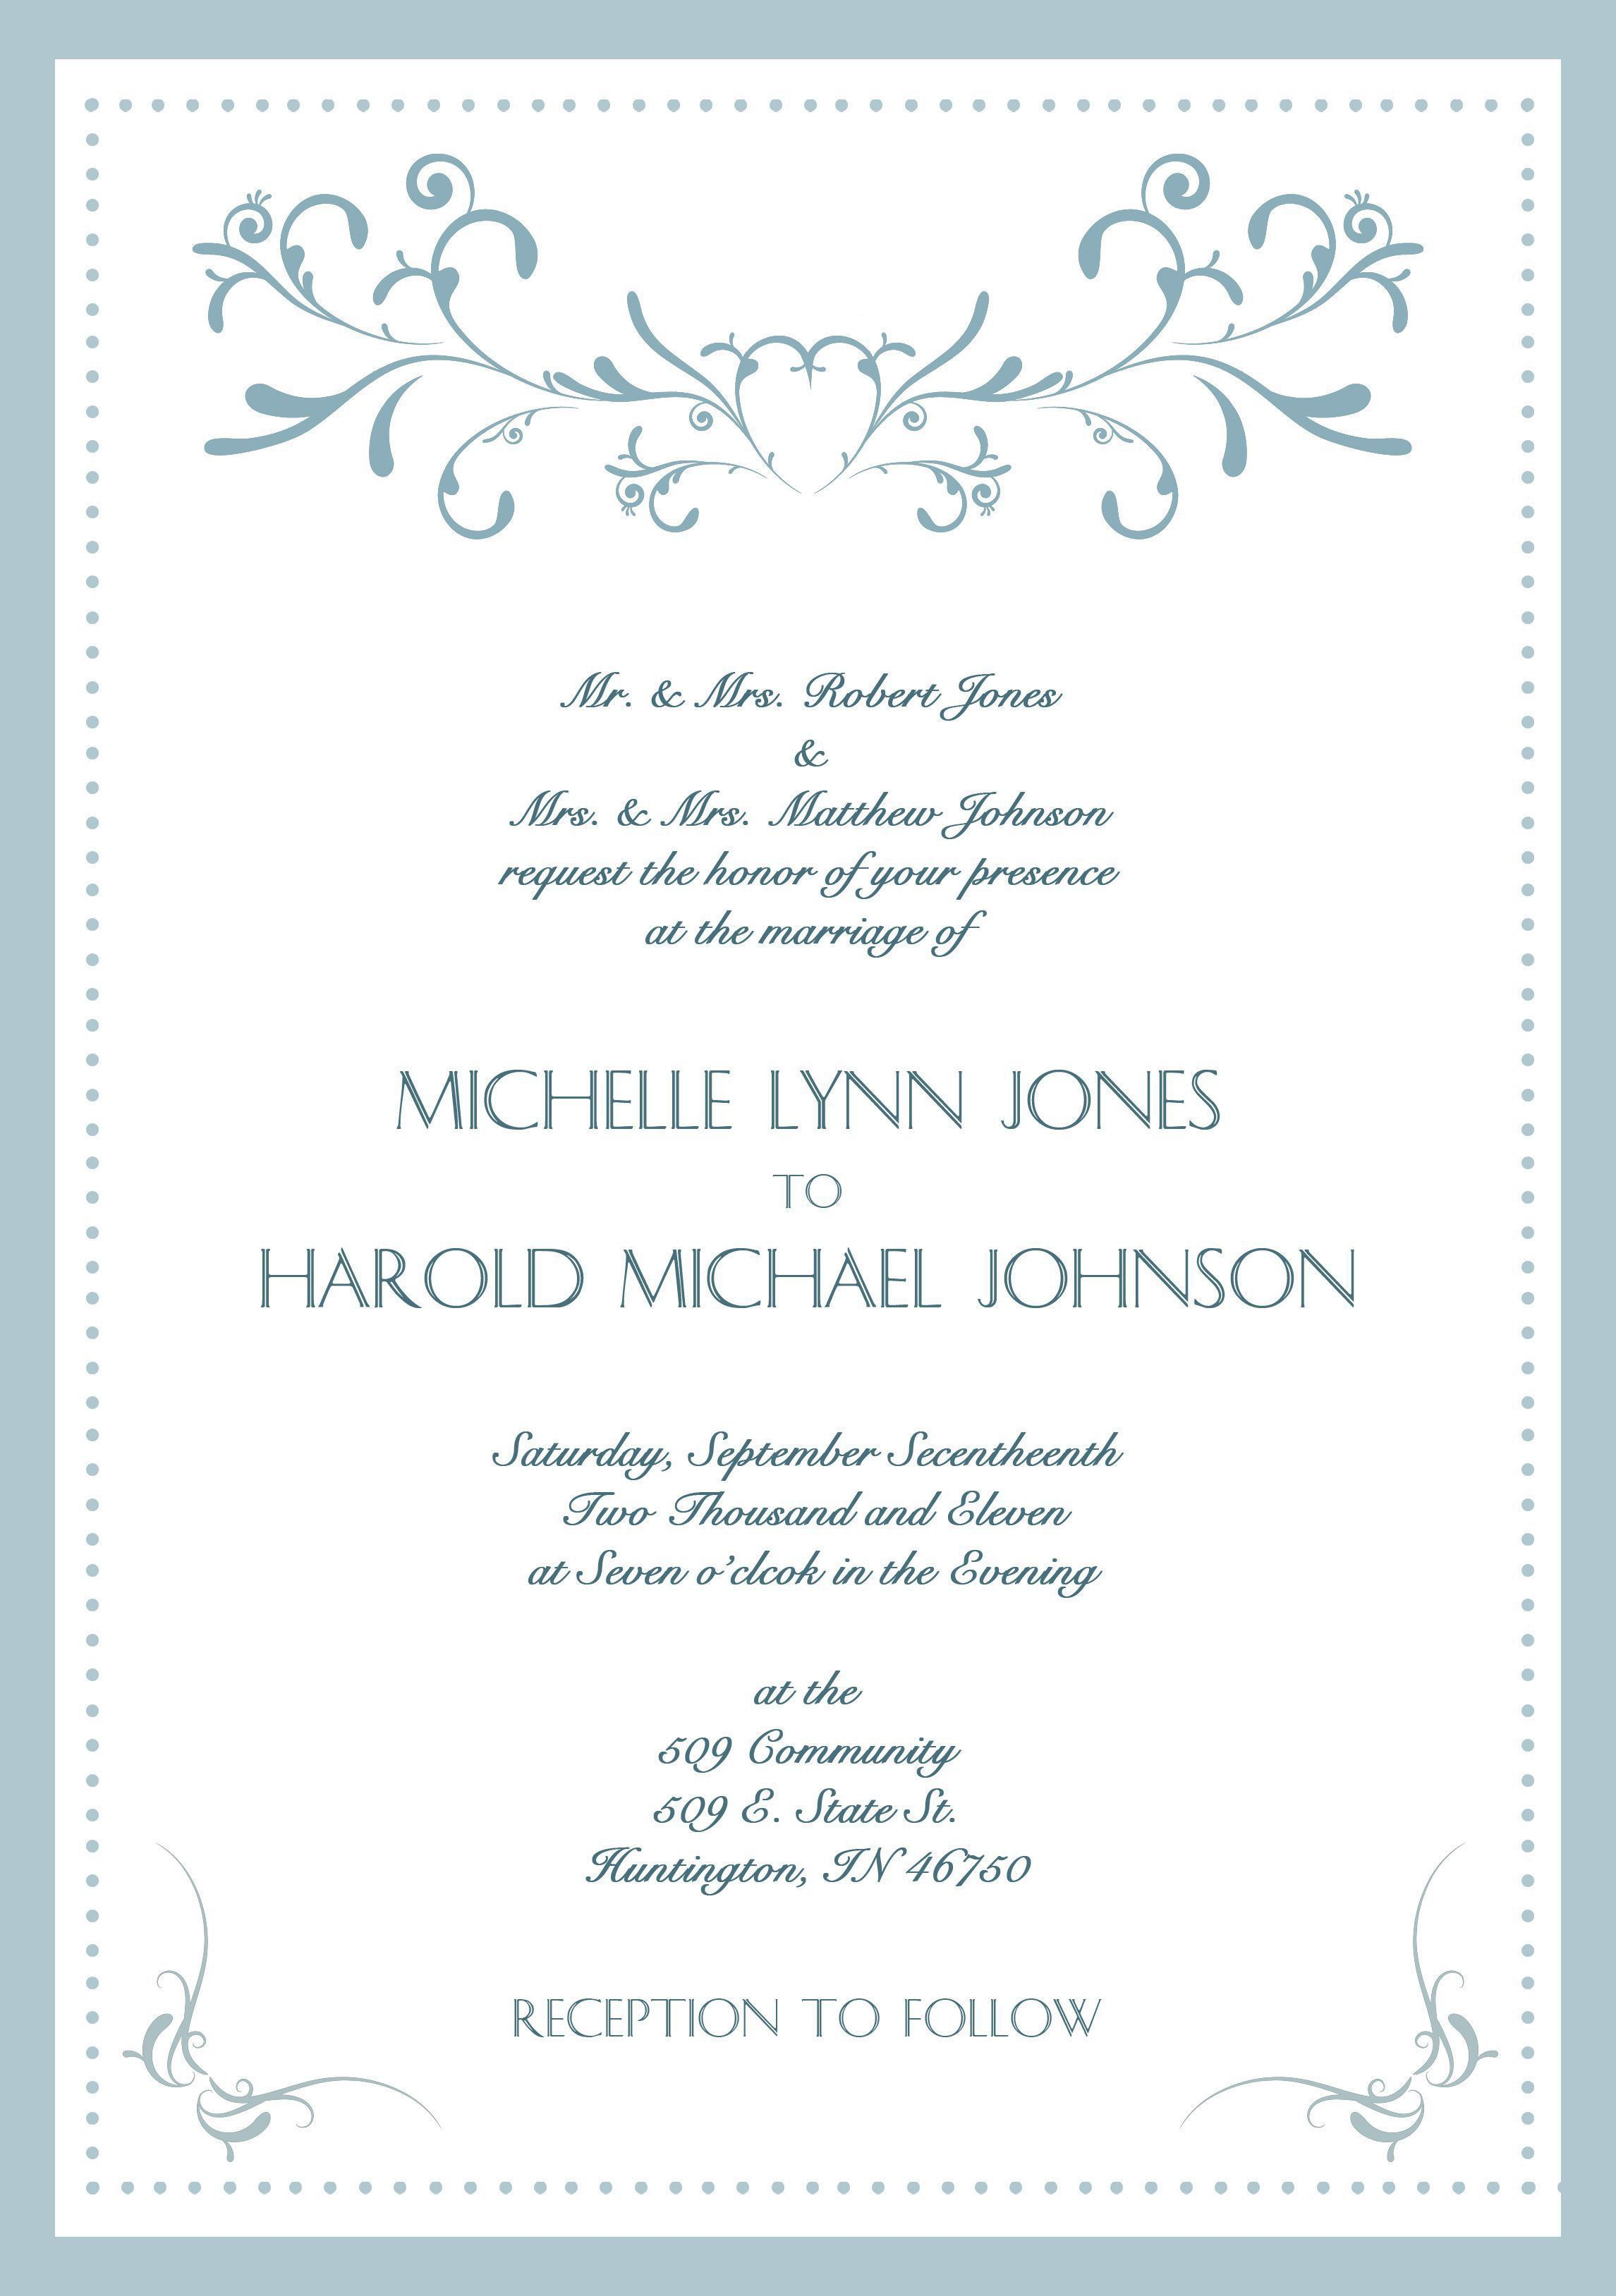 sample-wedding-invitation-cards-in-english | wedding invitations ...